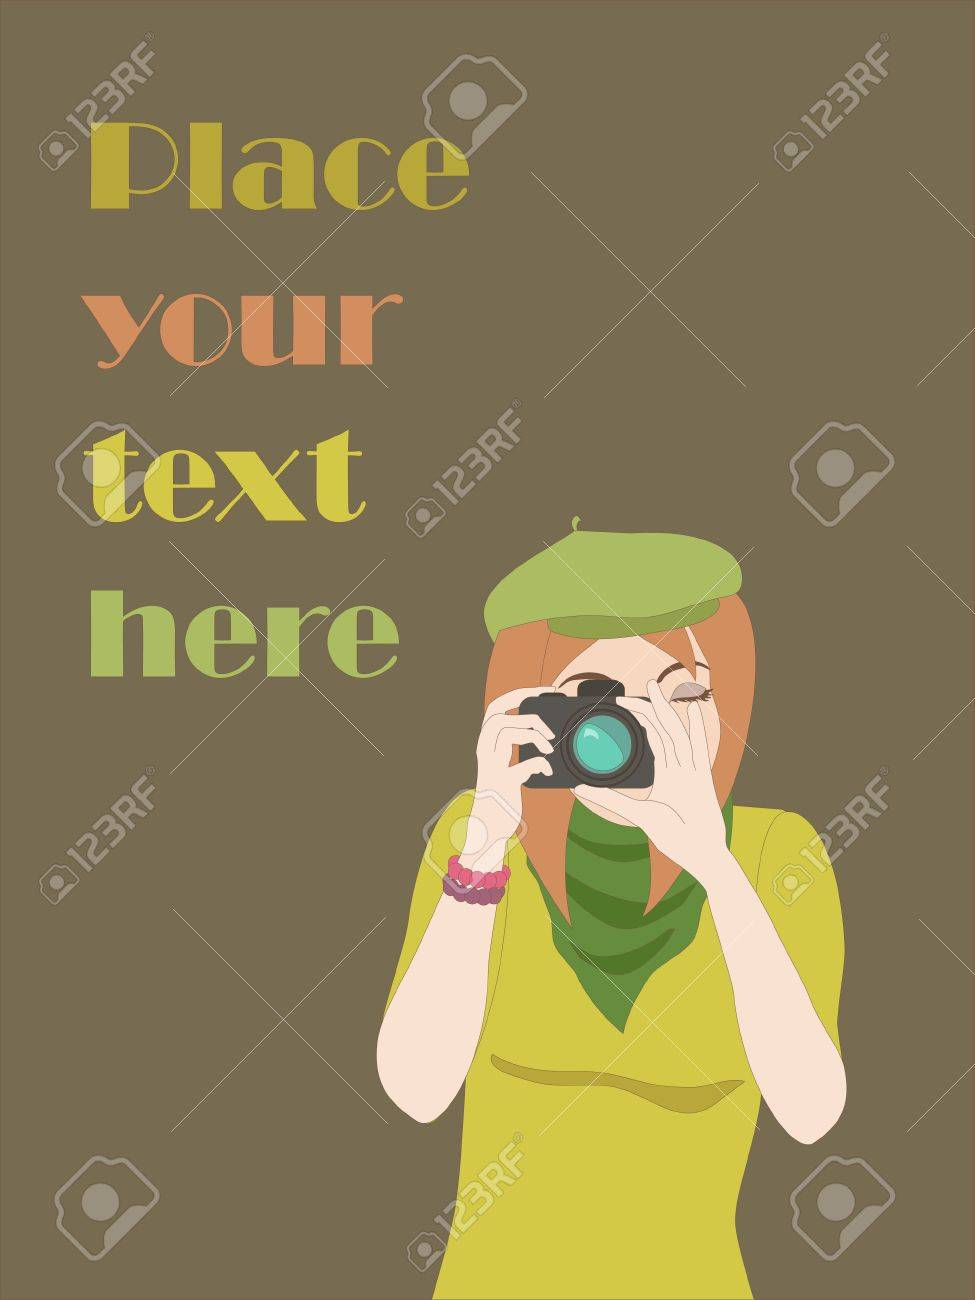 Card with photographer girl and place for text  Objects grouped and named in English  No mesh, gradient, transparency used Stock Vector - 15564003